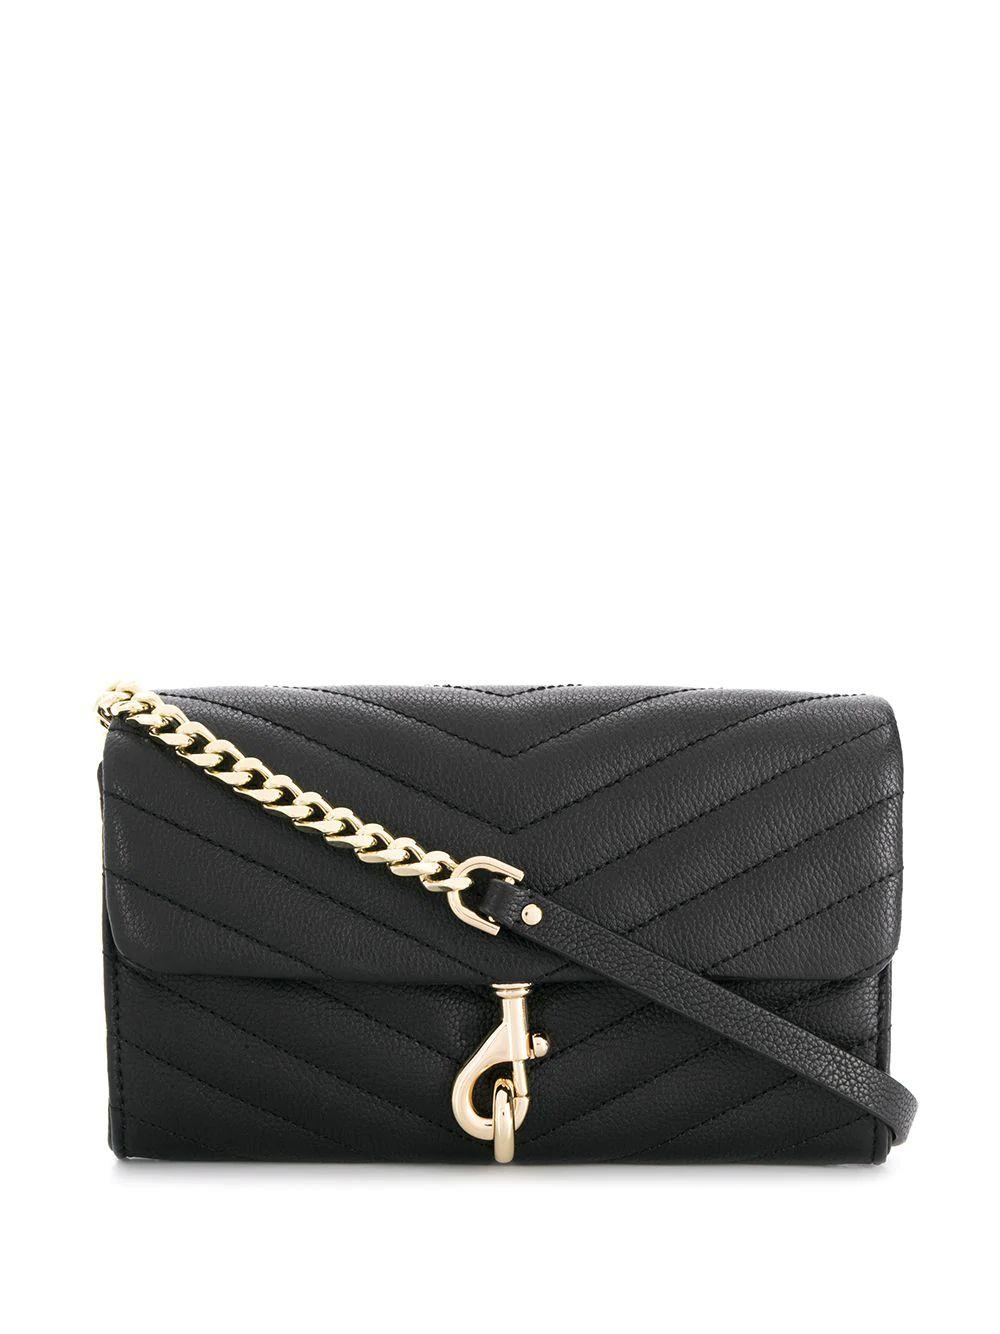 Edie Wallet On Chain Crossbody